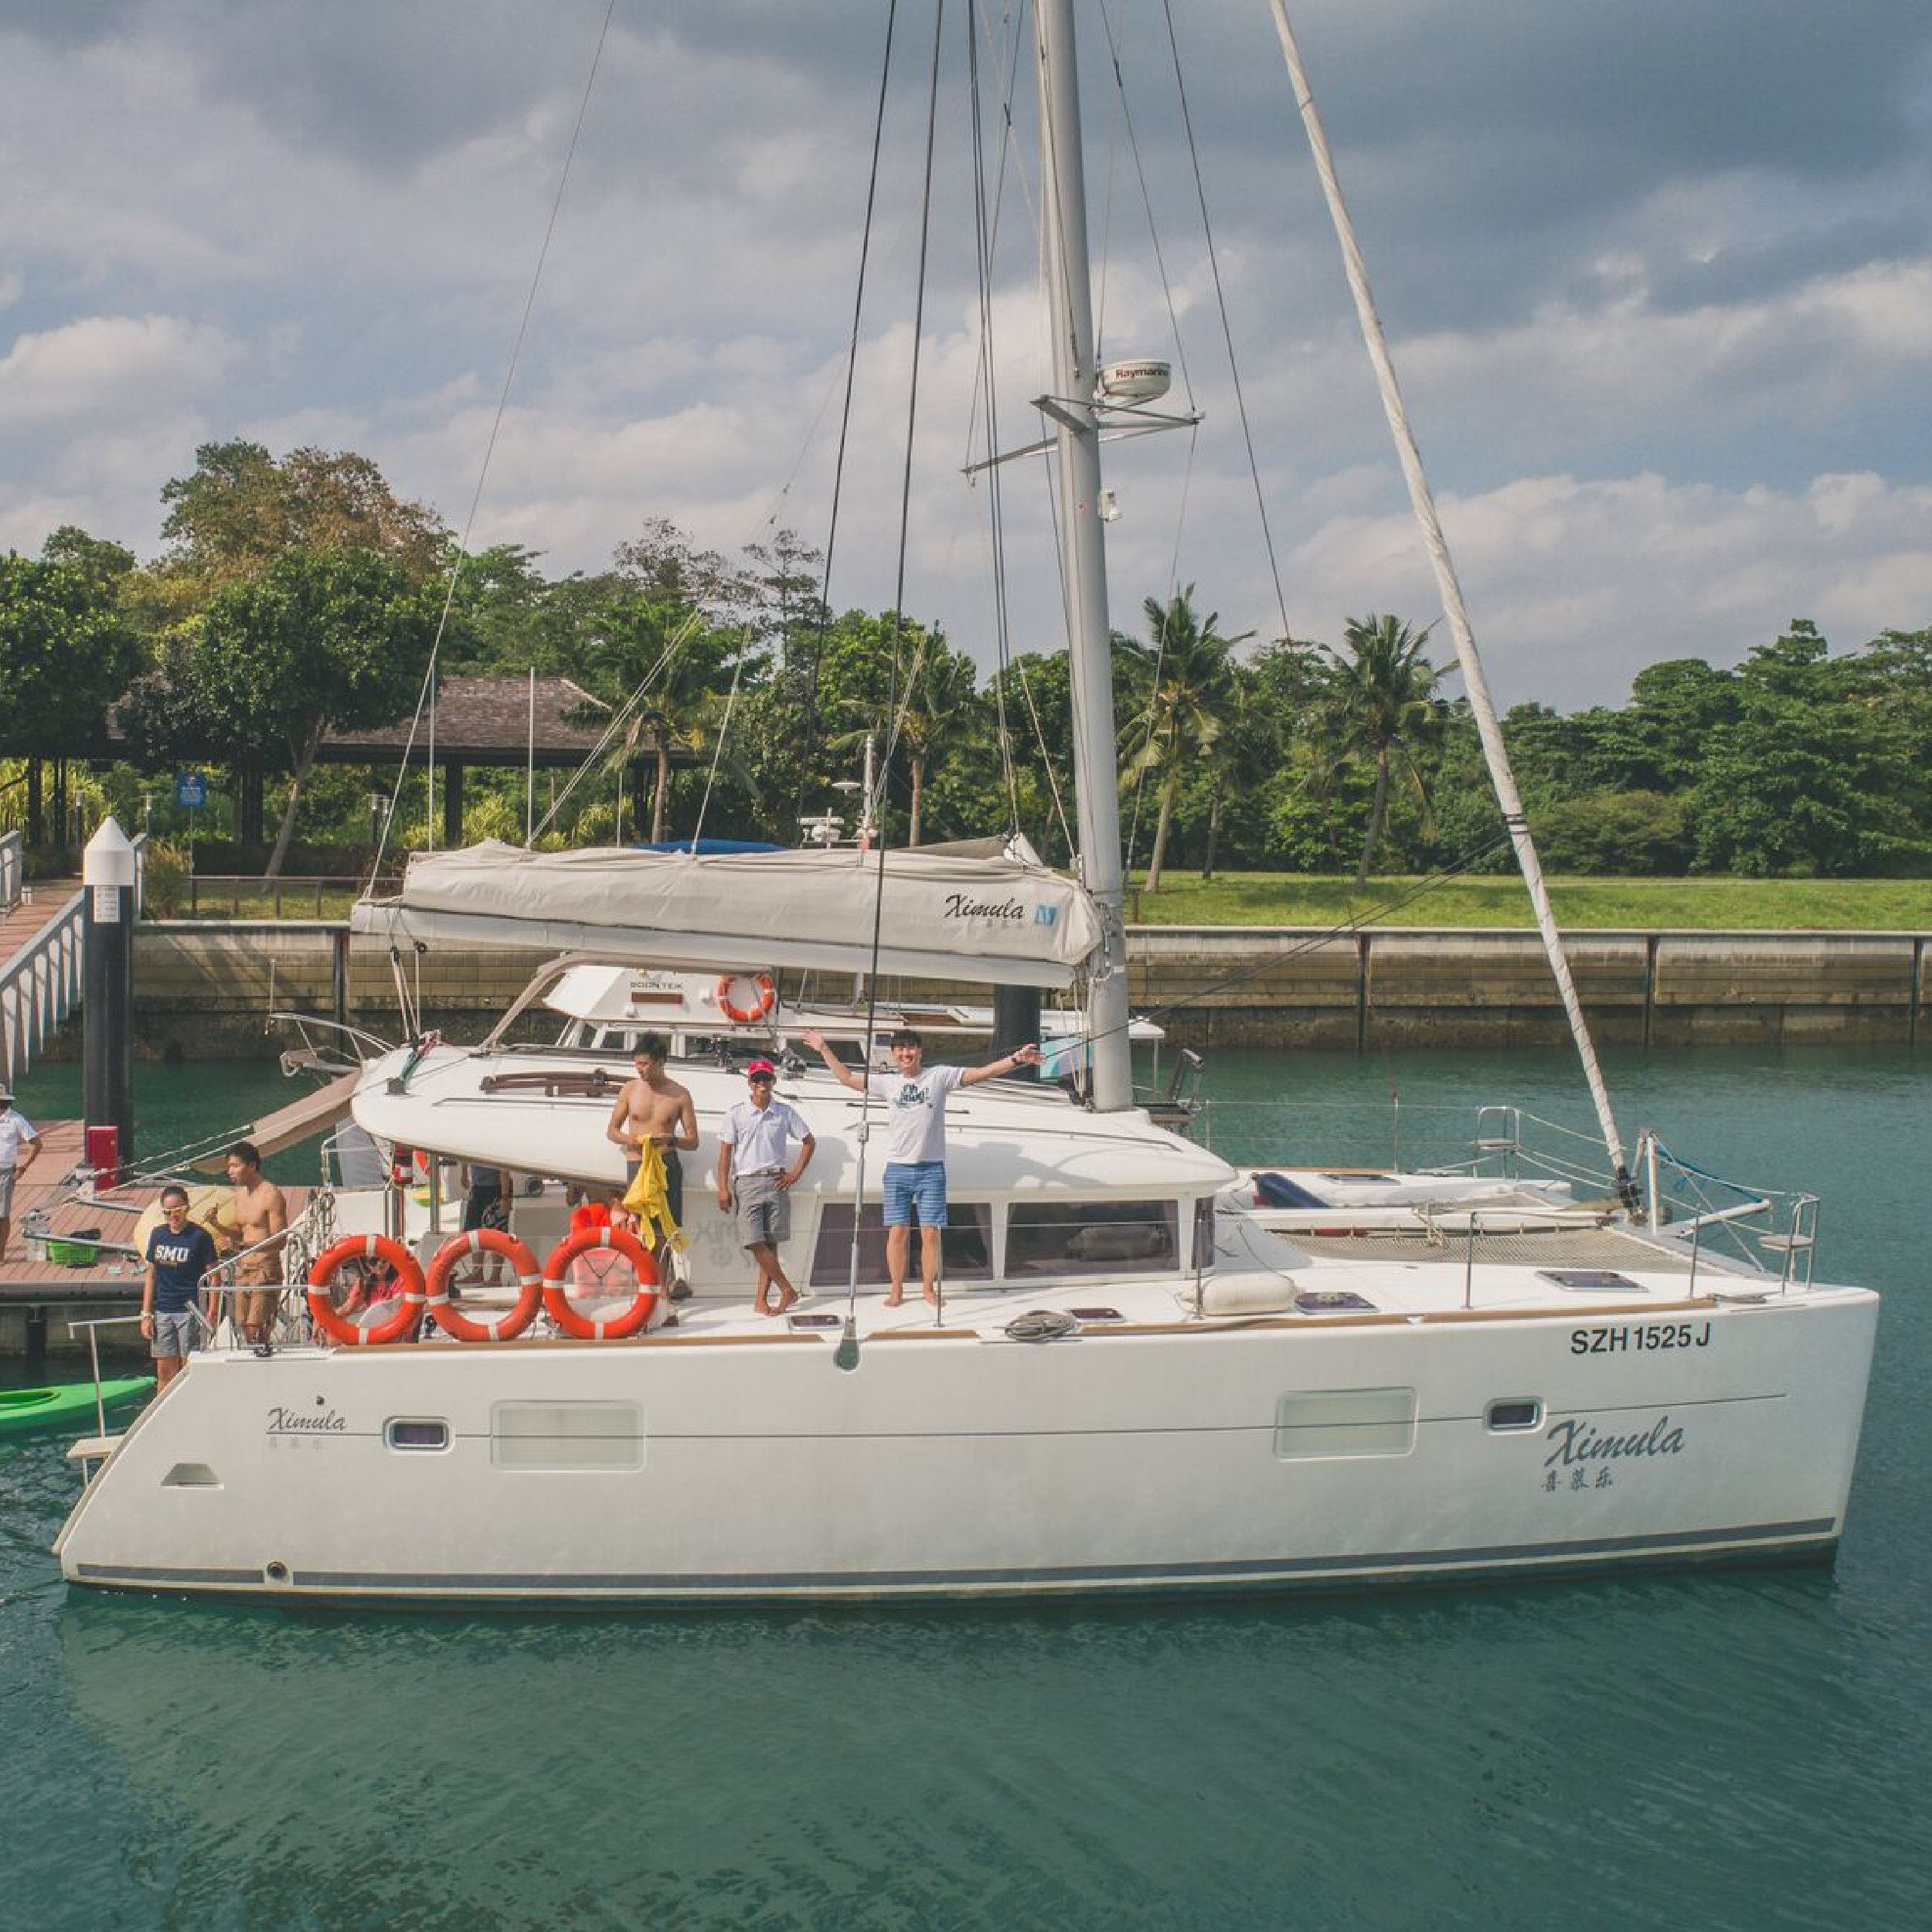 Sunset Harbour Cruise - Spend an evening cruising around the Southern Islands of Singapore on our 3-hour sunset sail. Relax and recharge on our spacious 40ft catamaran. Light snacks, soft drinks and water activities are included.Maximum of 18 people.Every TuesdayUS$66 per person →